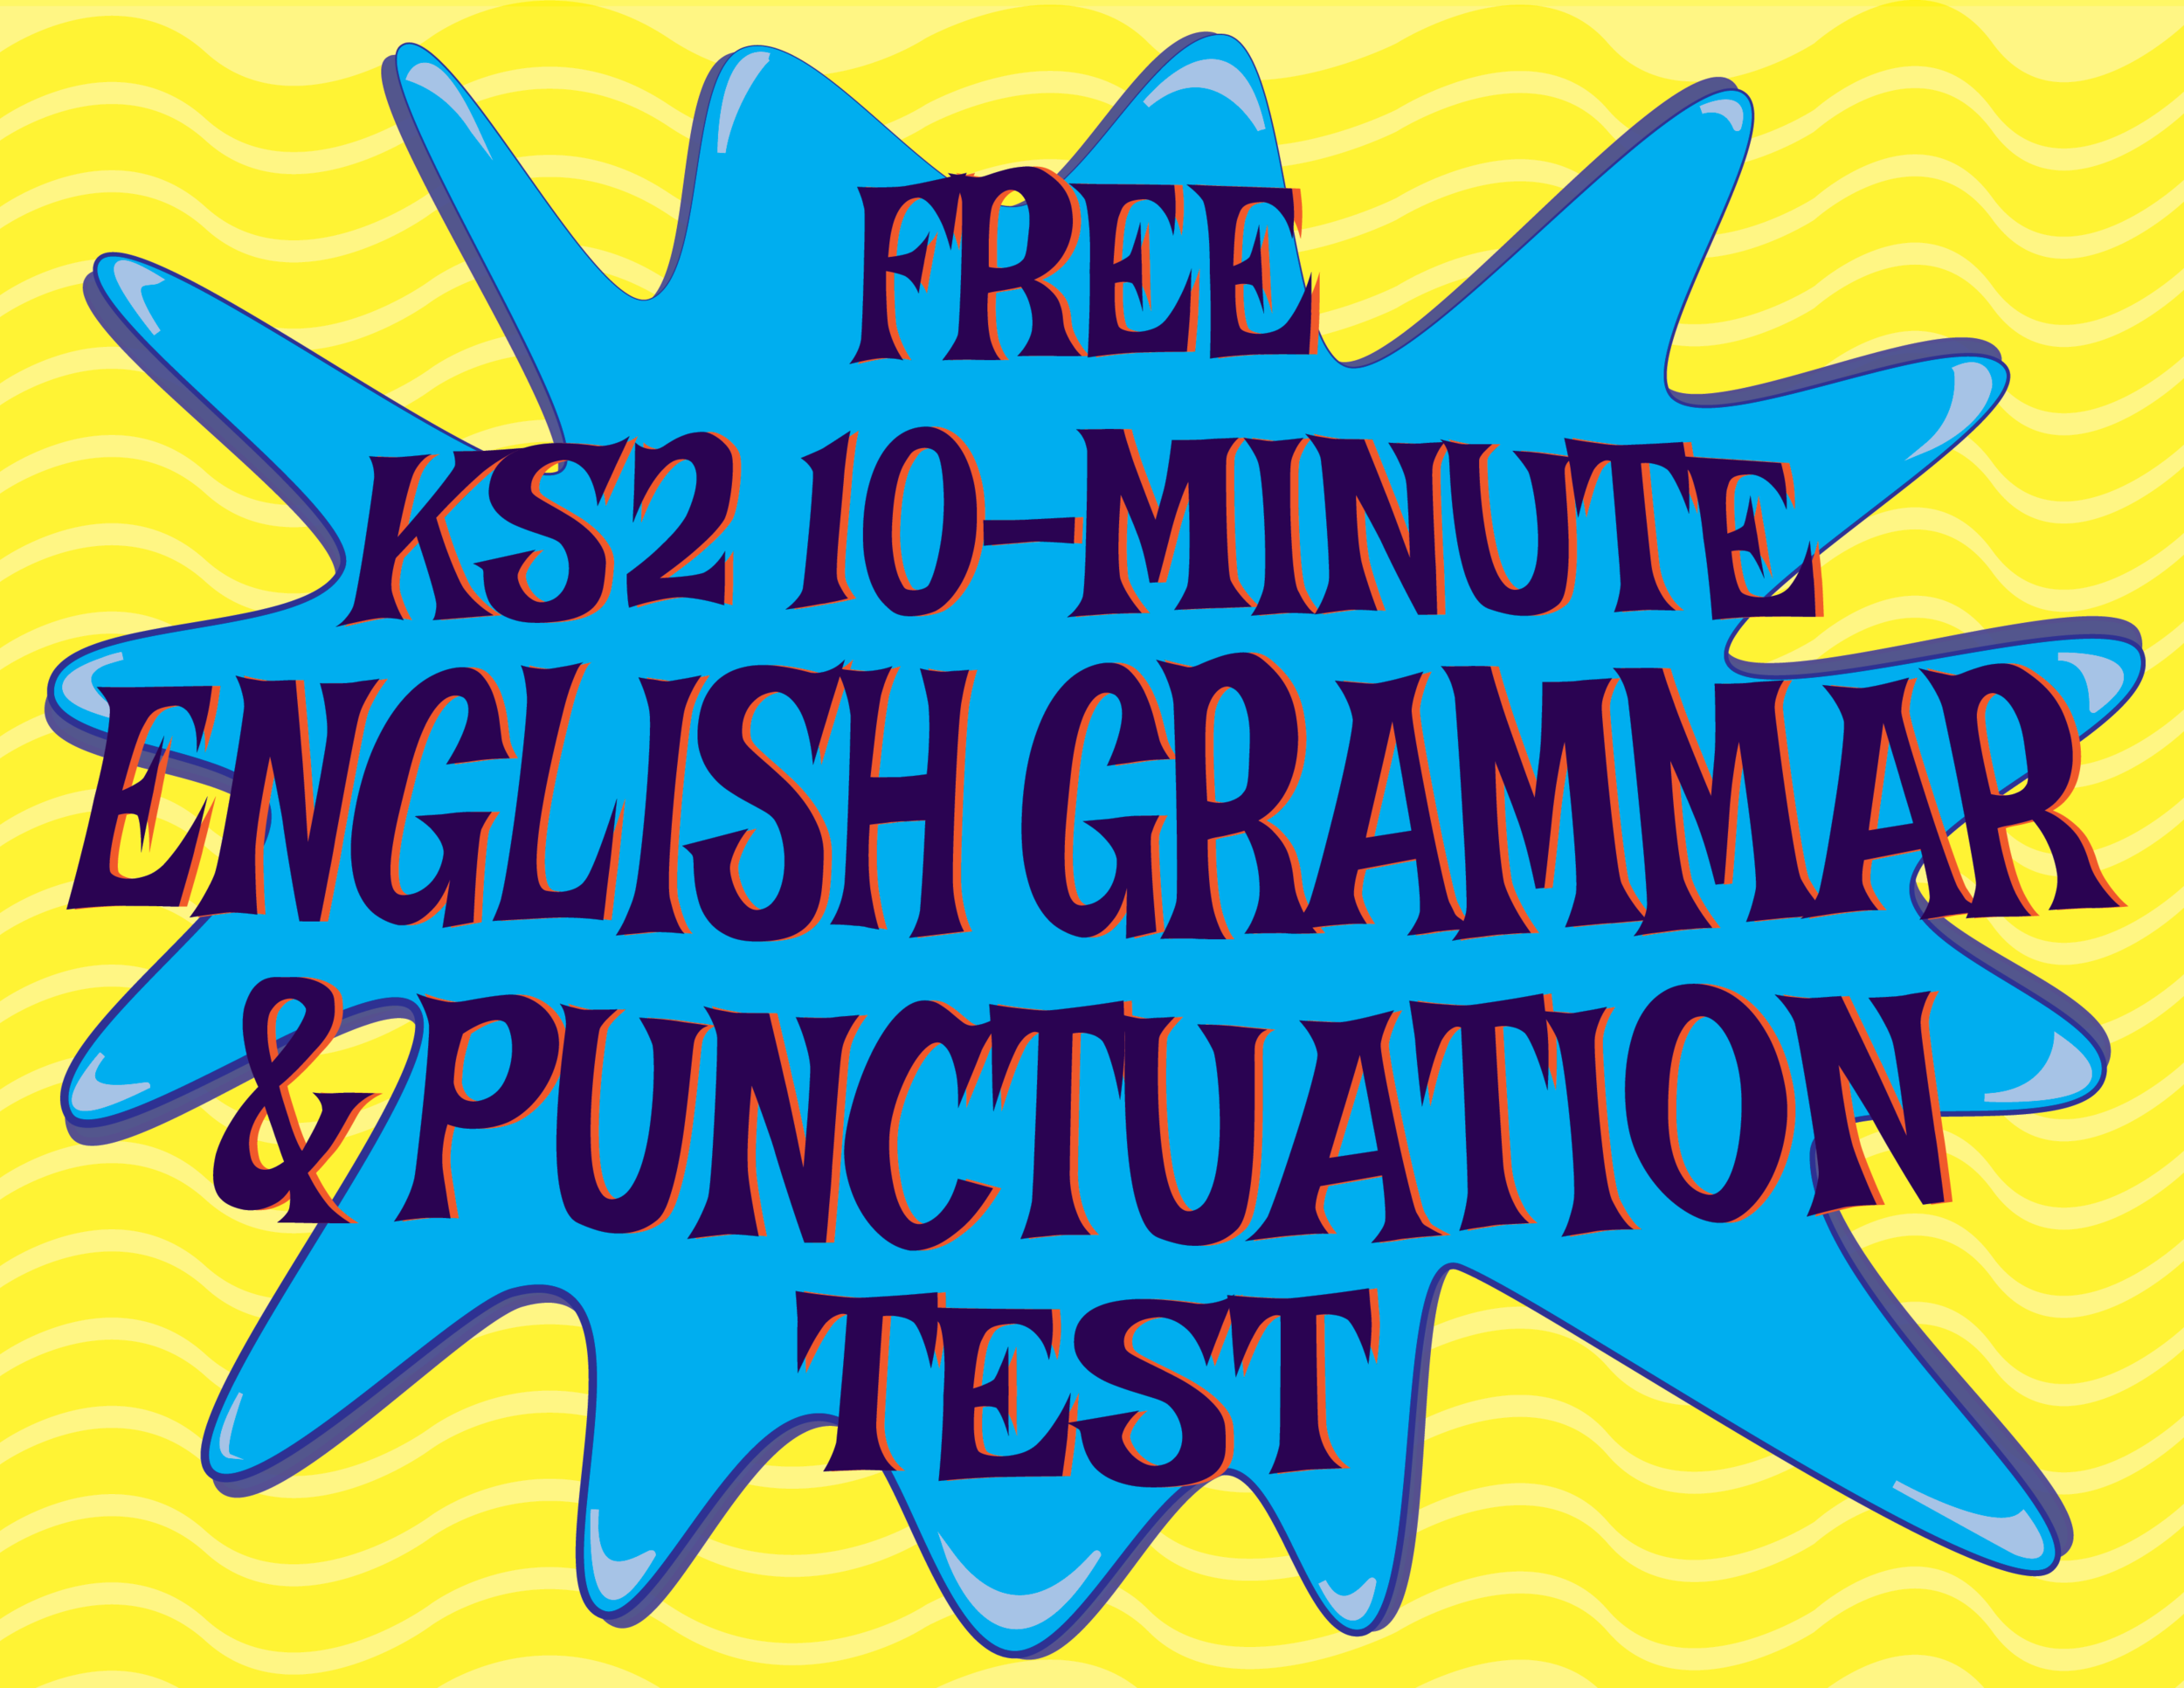 Free KS2 10-Minute English Test - Questions & Answers - DOWNLOAD THE PRINTABLE PDFs OR DO IT ONLINE!